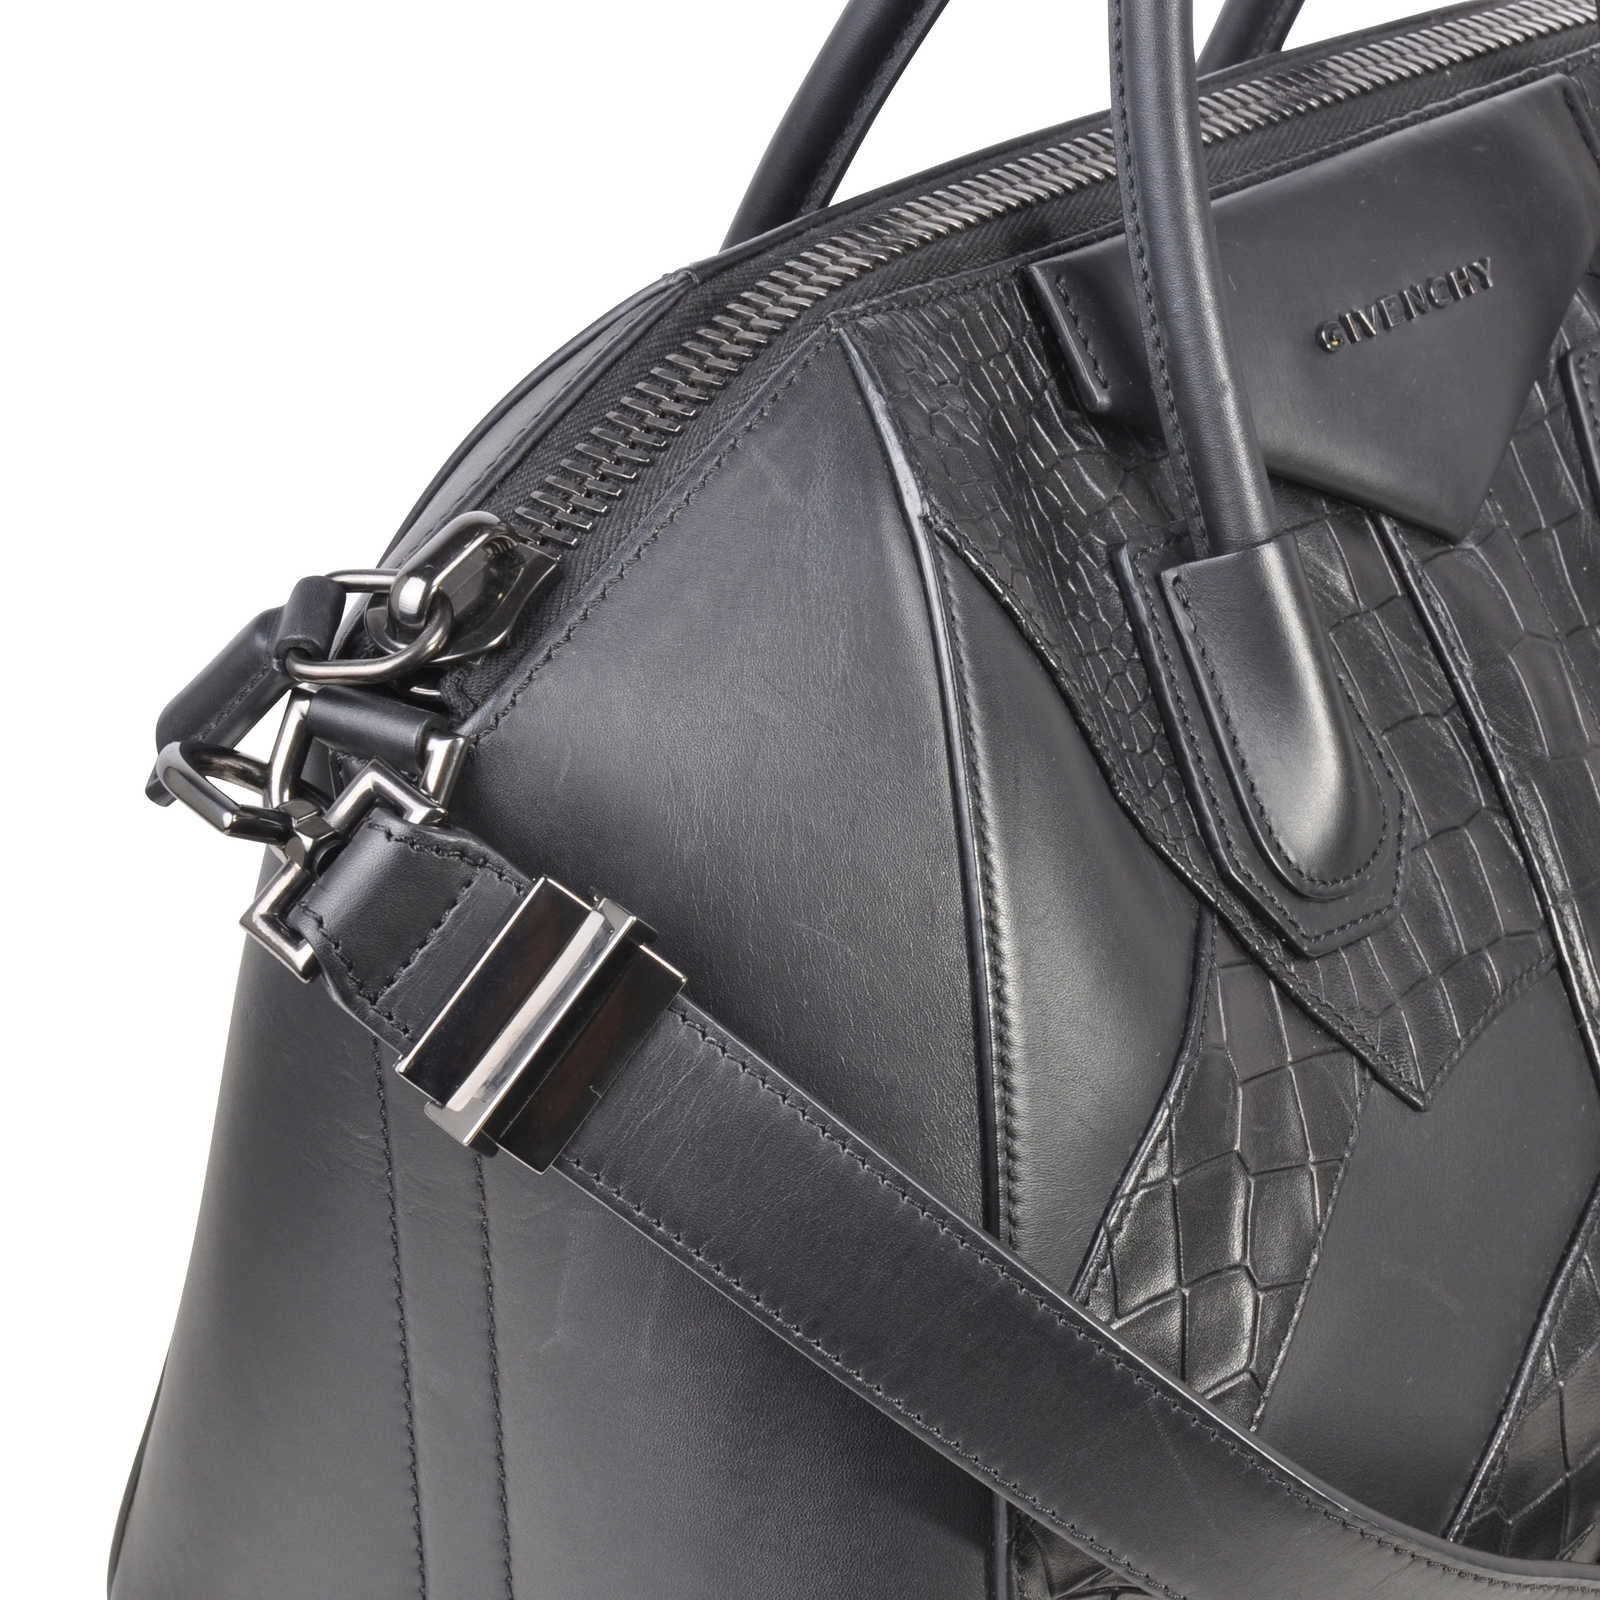 ... Authentic Pre Owned Givenchy Antigona Bag (PSS-073-00015) - Thumbnail 3  ... 6aa4b51cc7